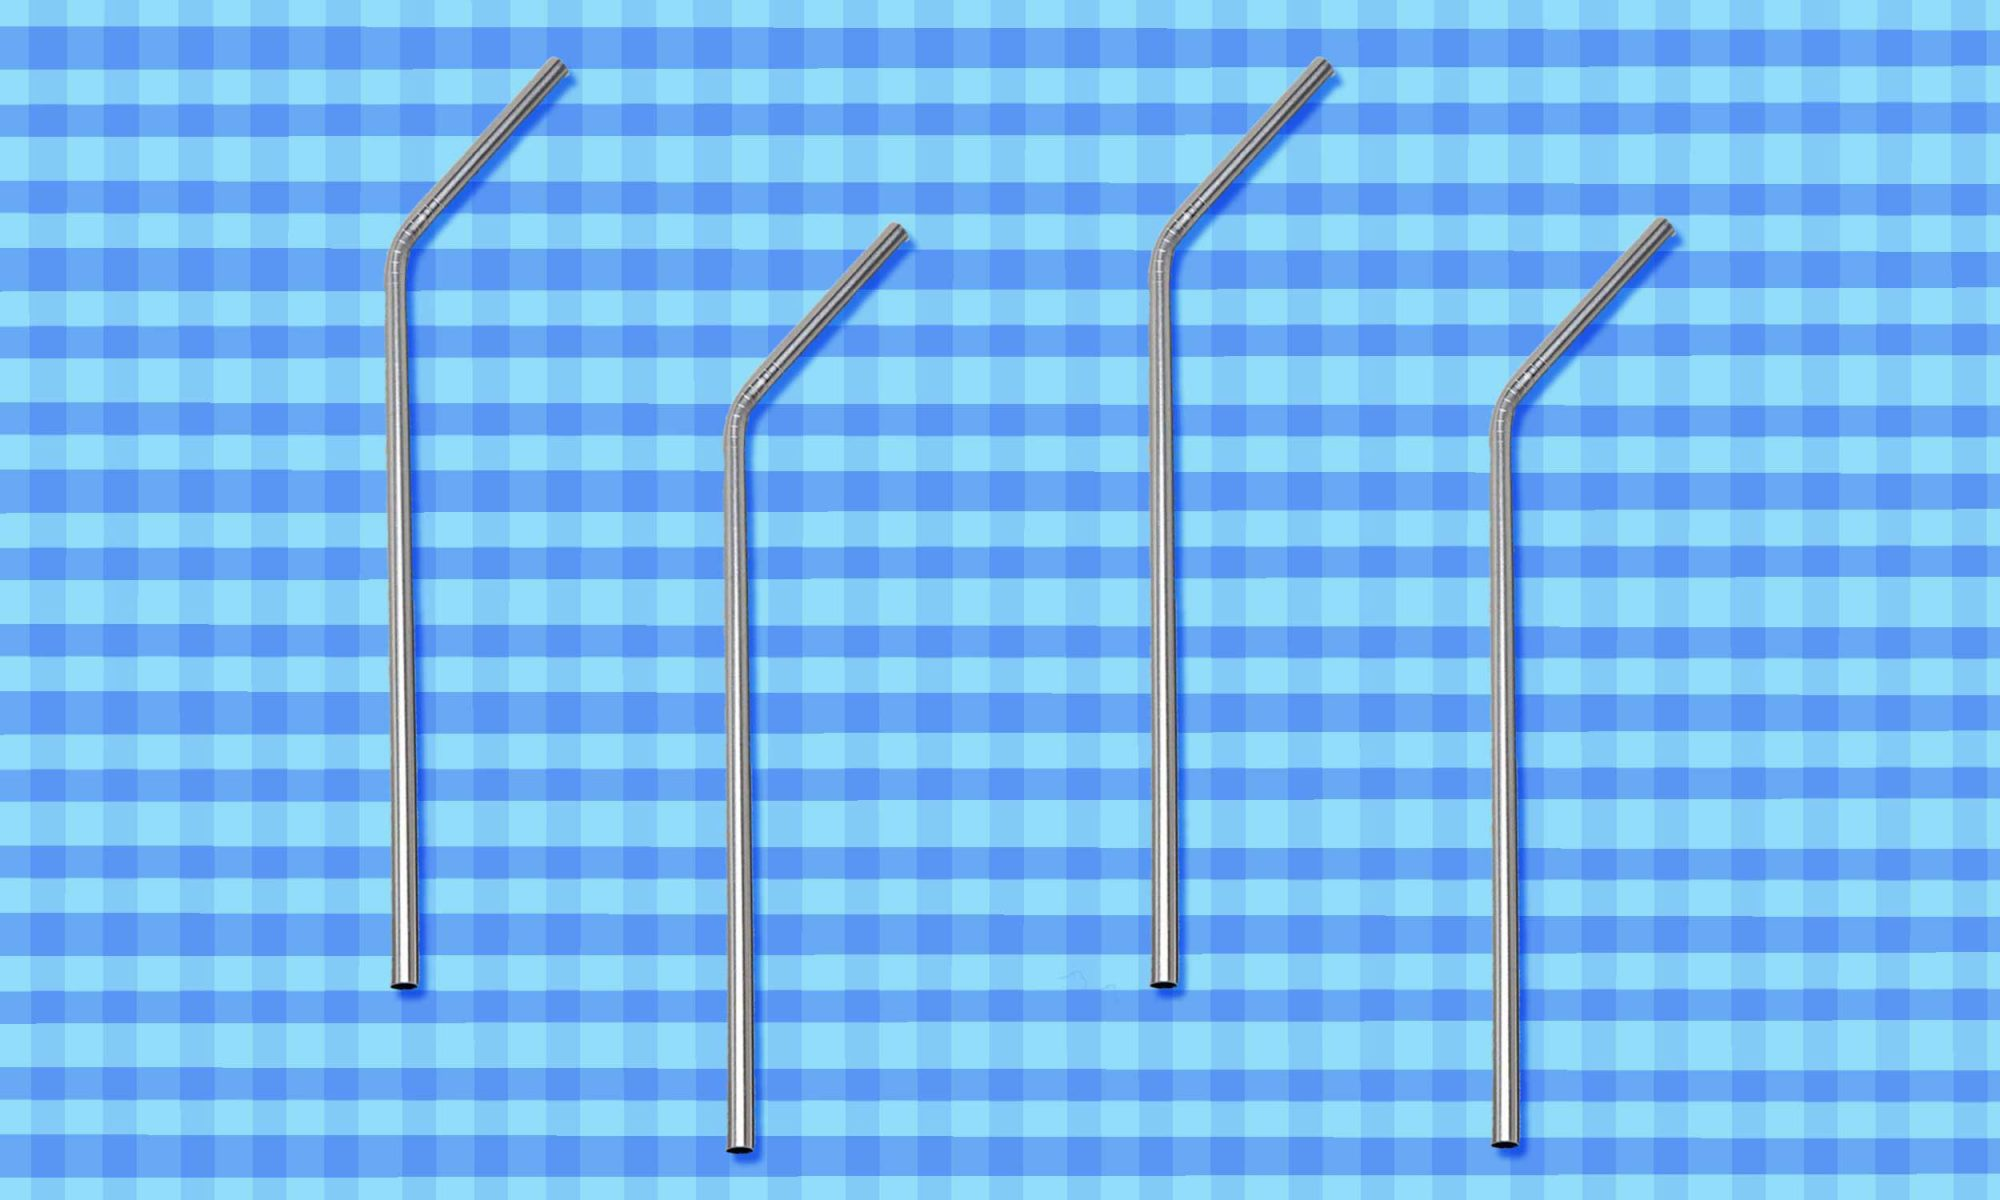 EC: Metal Straws Make Every Drink Taste Better